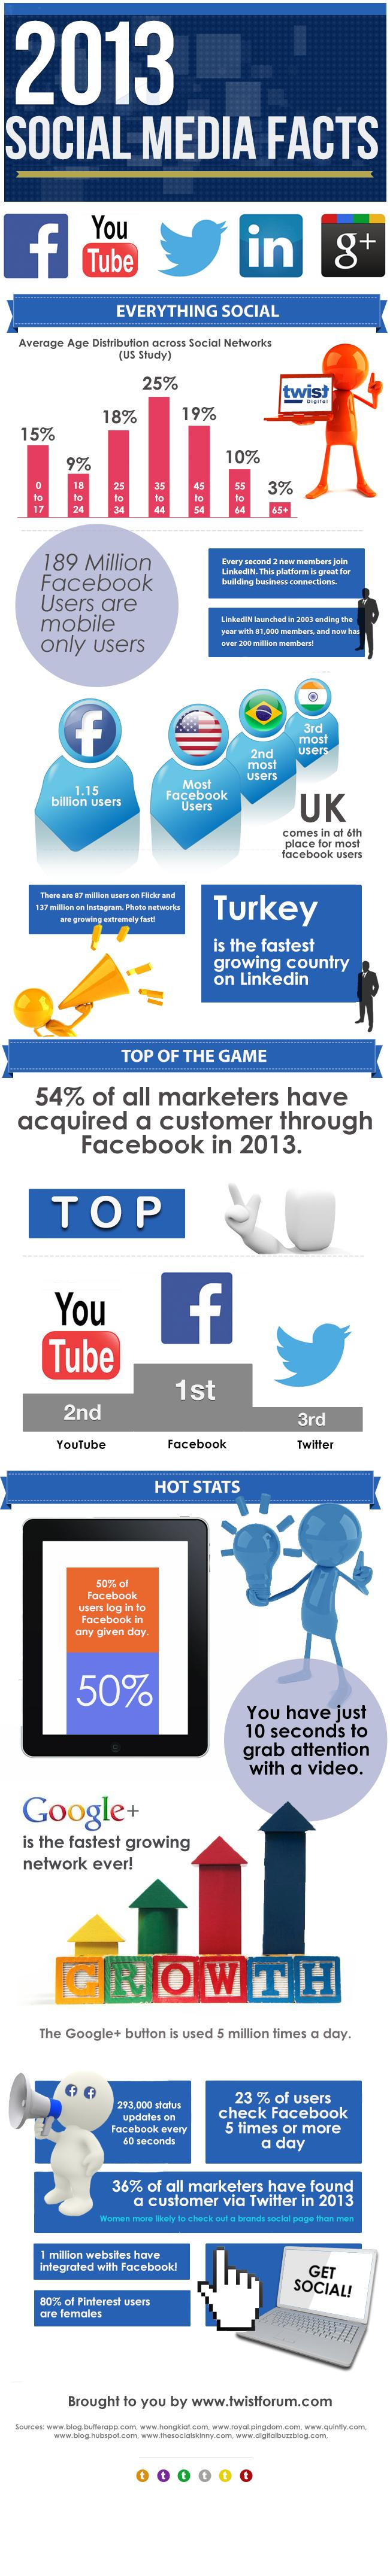 2013 Social Media Facts for Business [INFOGRAPHIC]